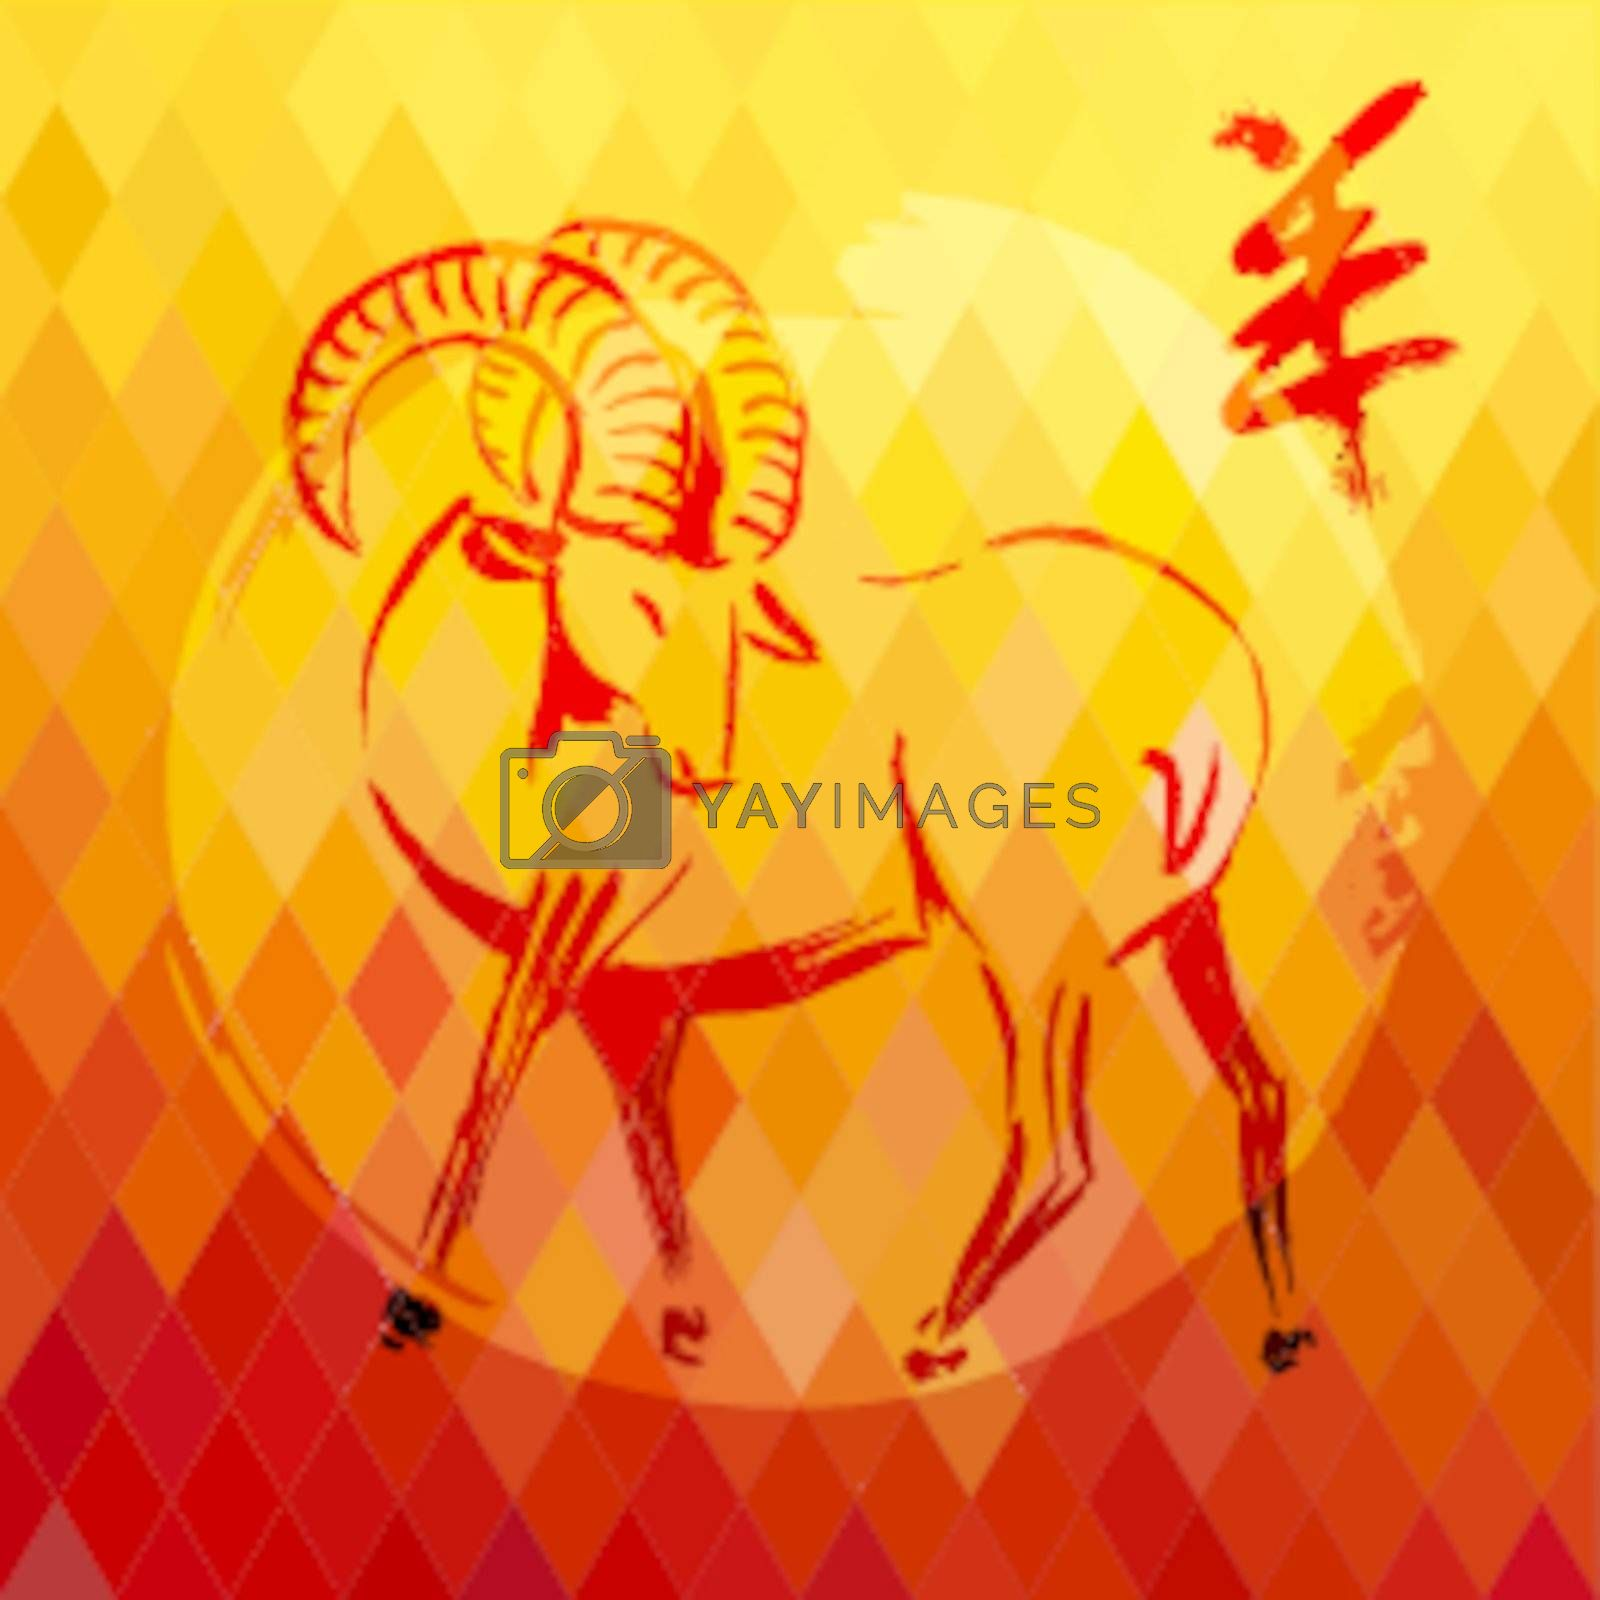 New Year 2015 of the Goat Chinese calligraphy over color geometric background. EPS10 vector file organized in layers for easy editing.